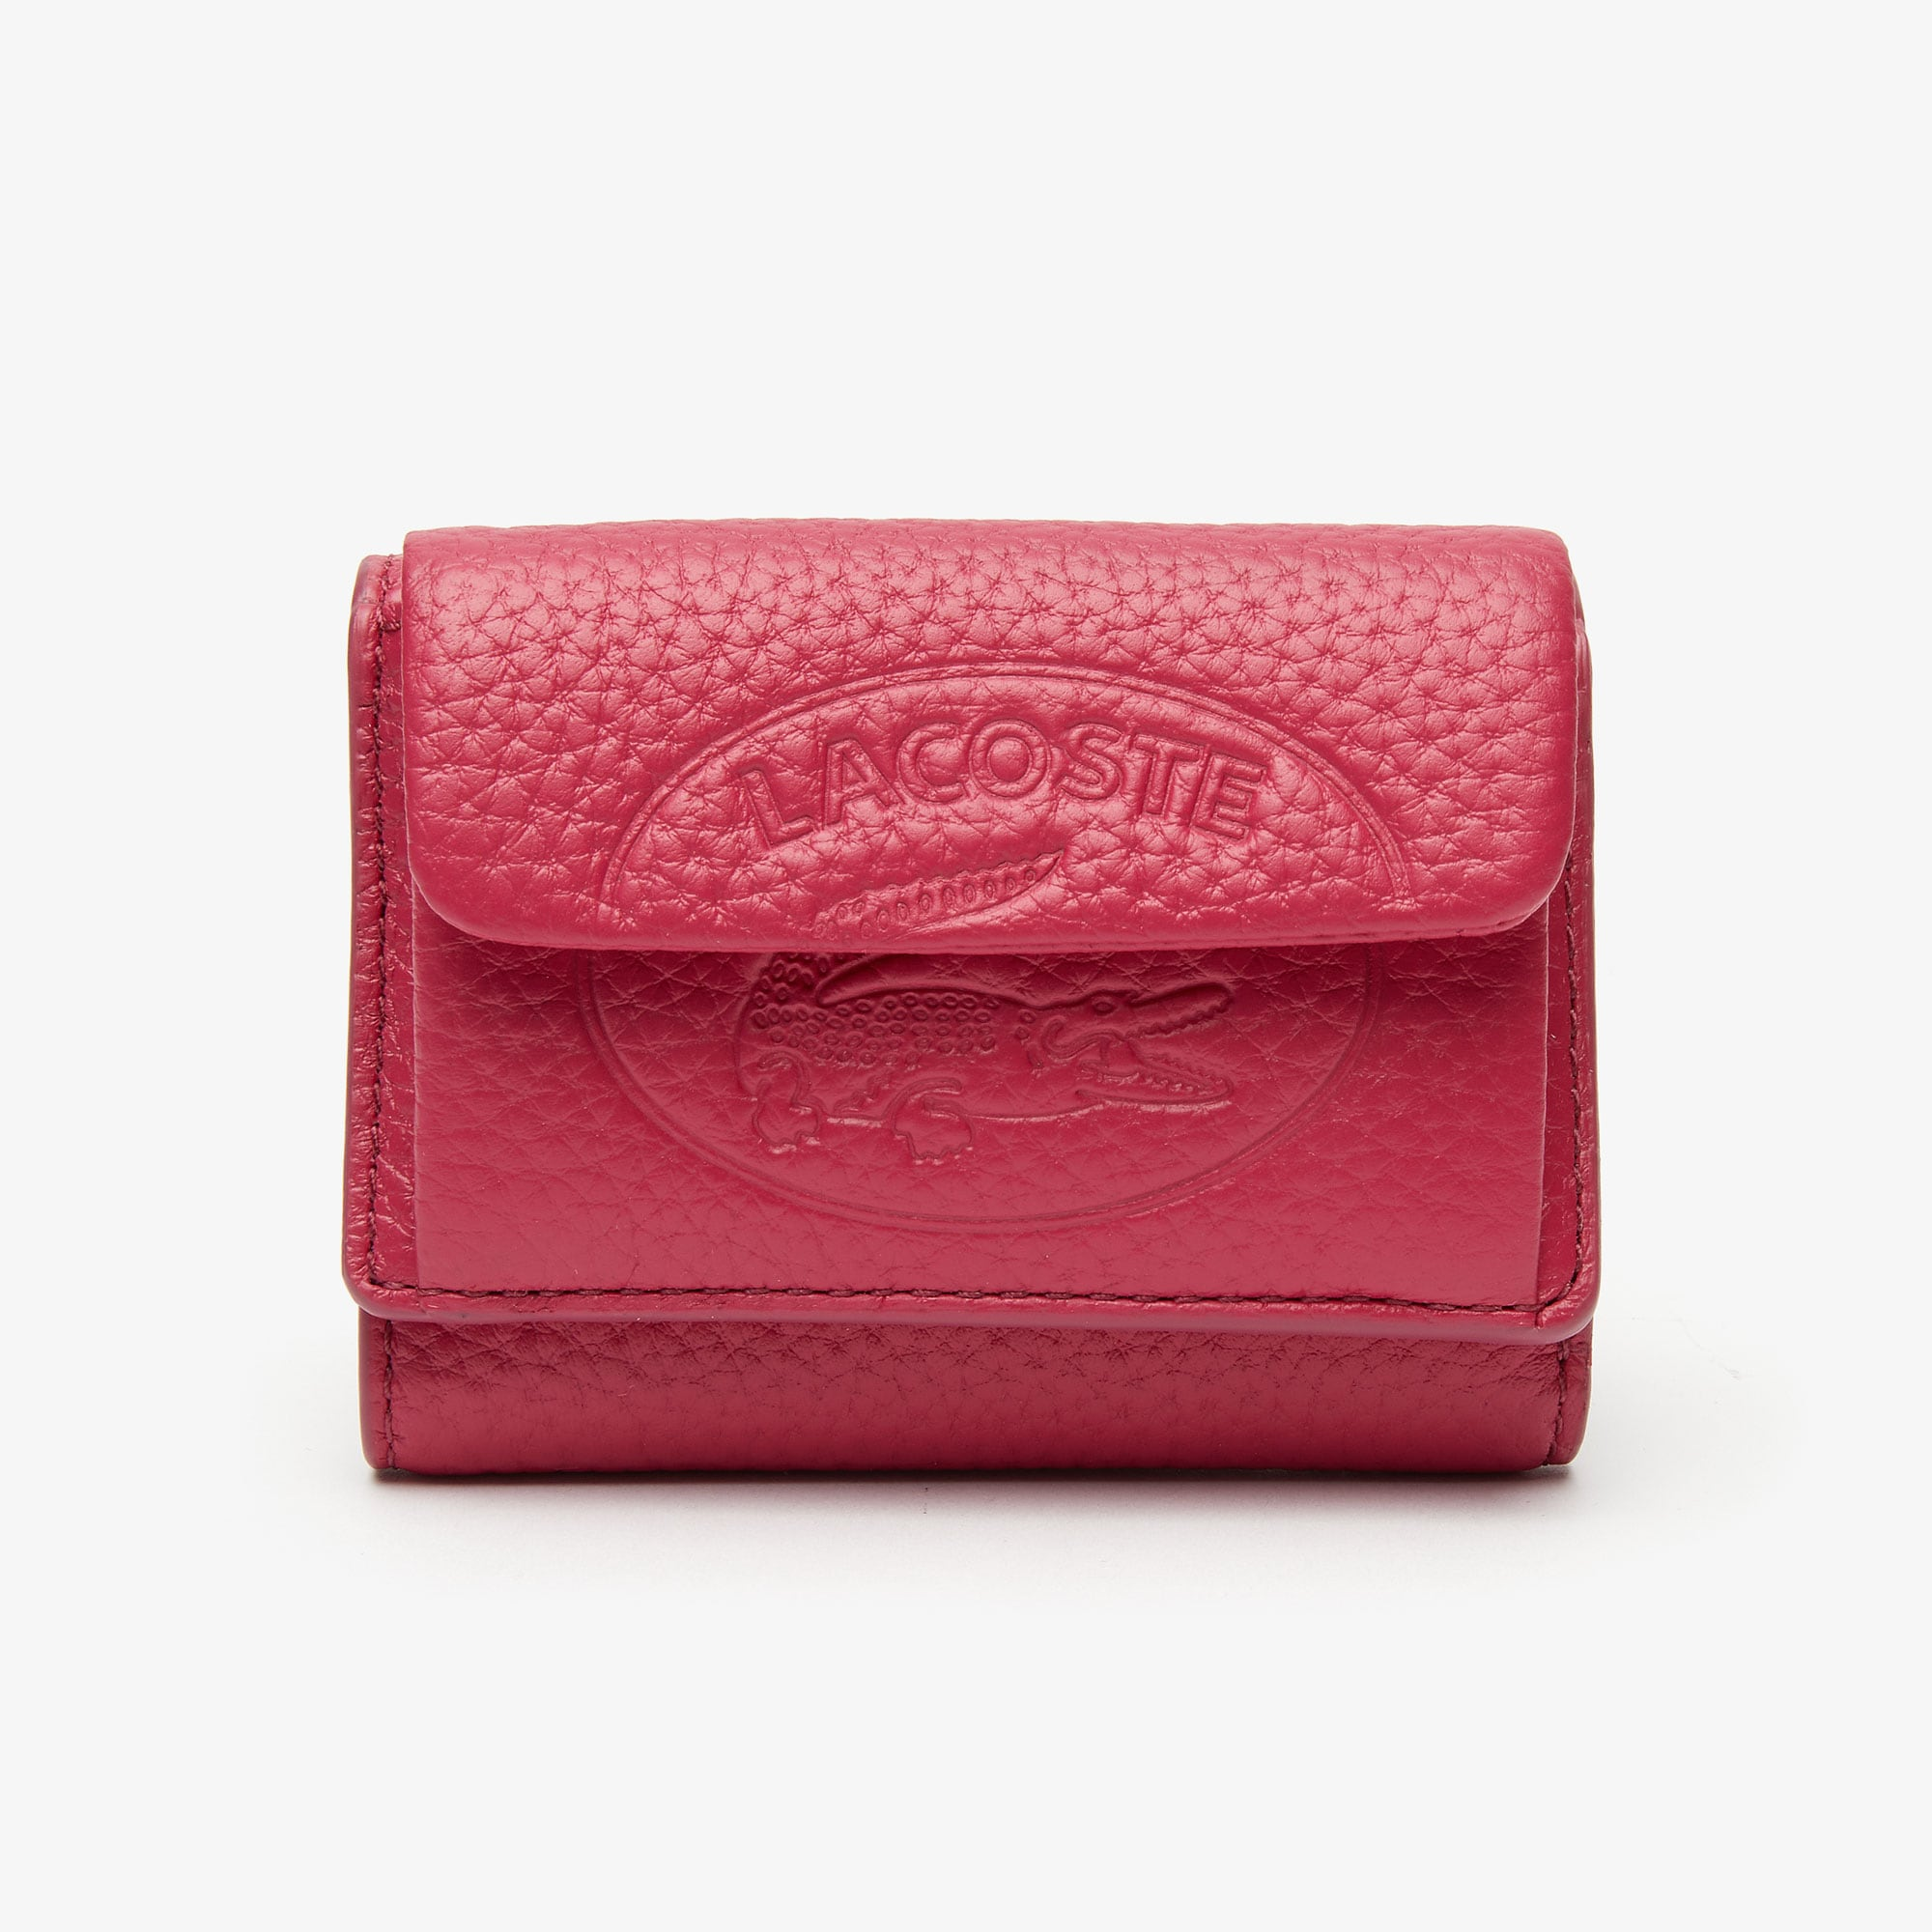 Women's Croco Crew Small Grained Leather Wallet